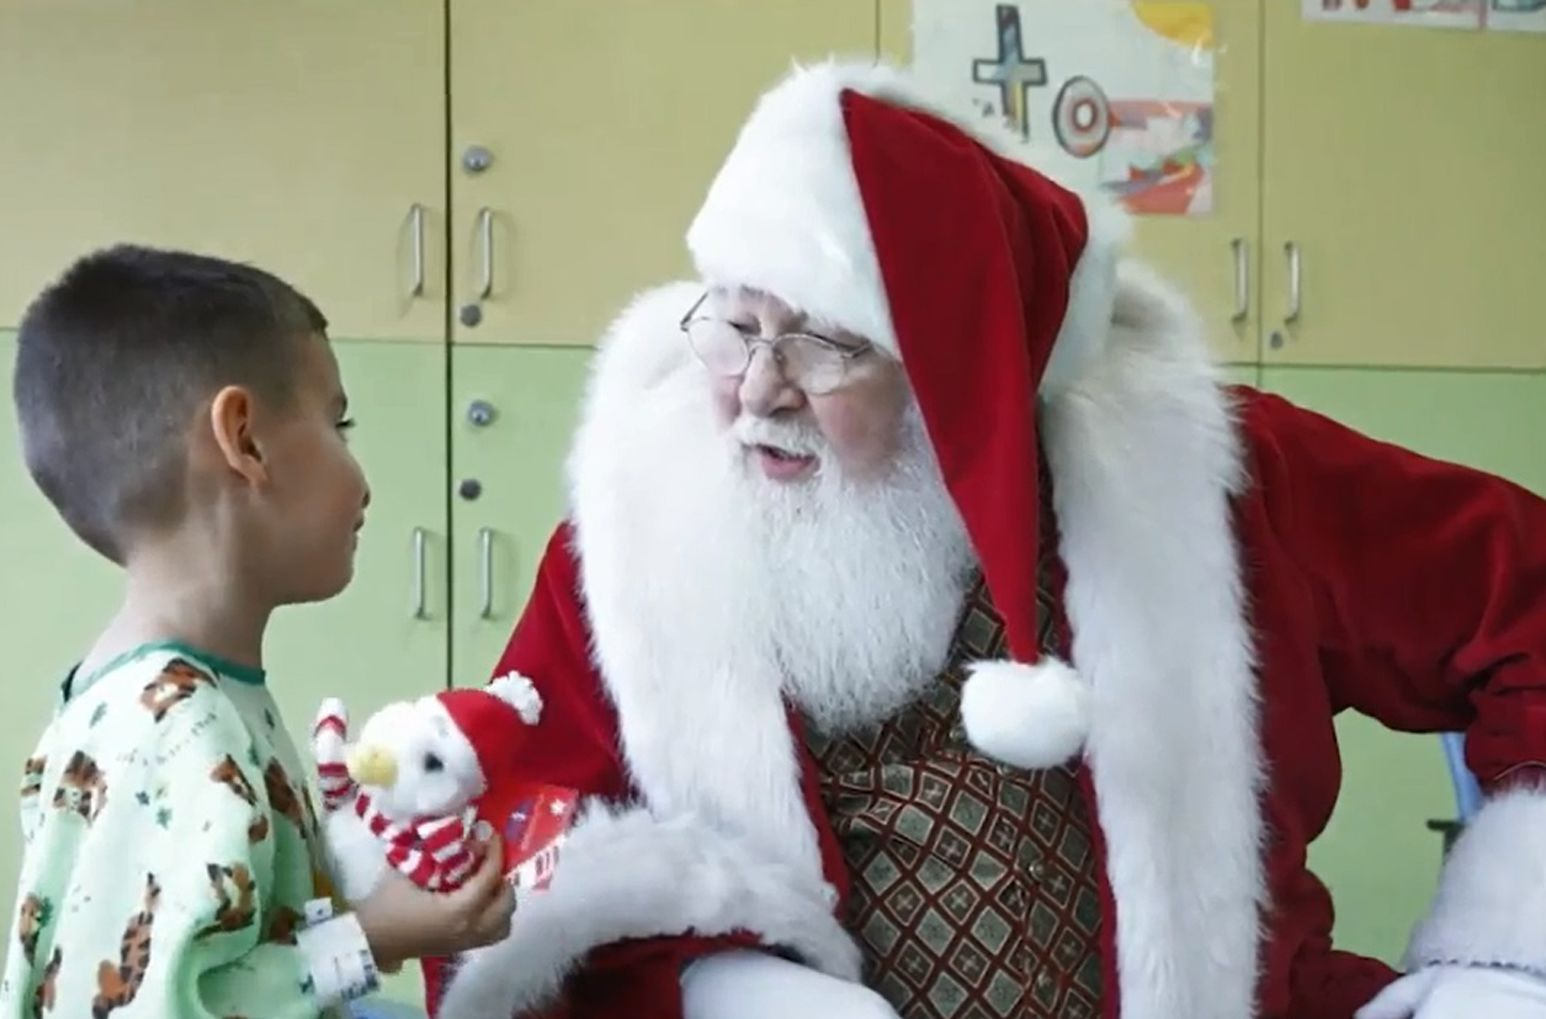 Santa Claus speaks to a child at Cohen Children's Medical Center.